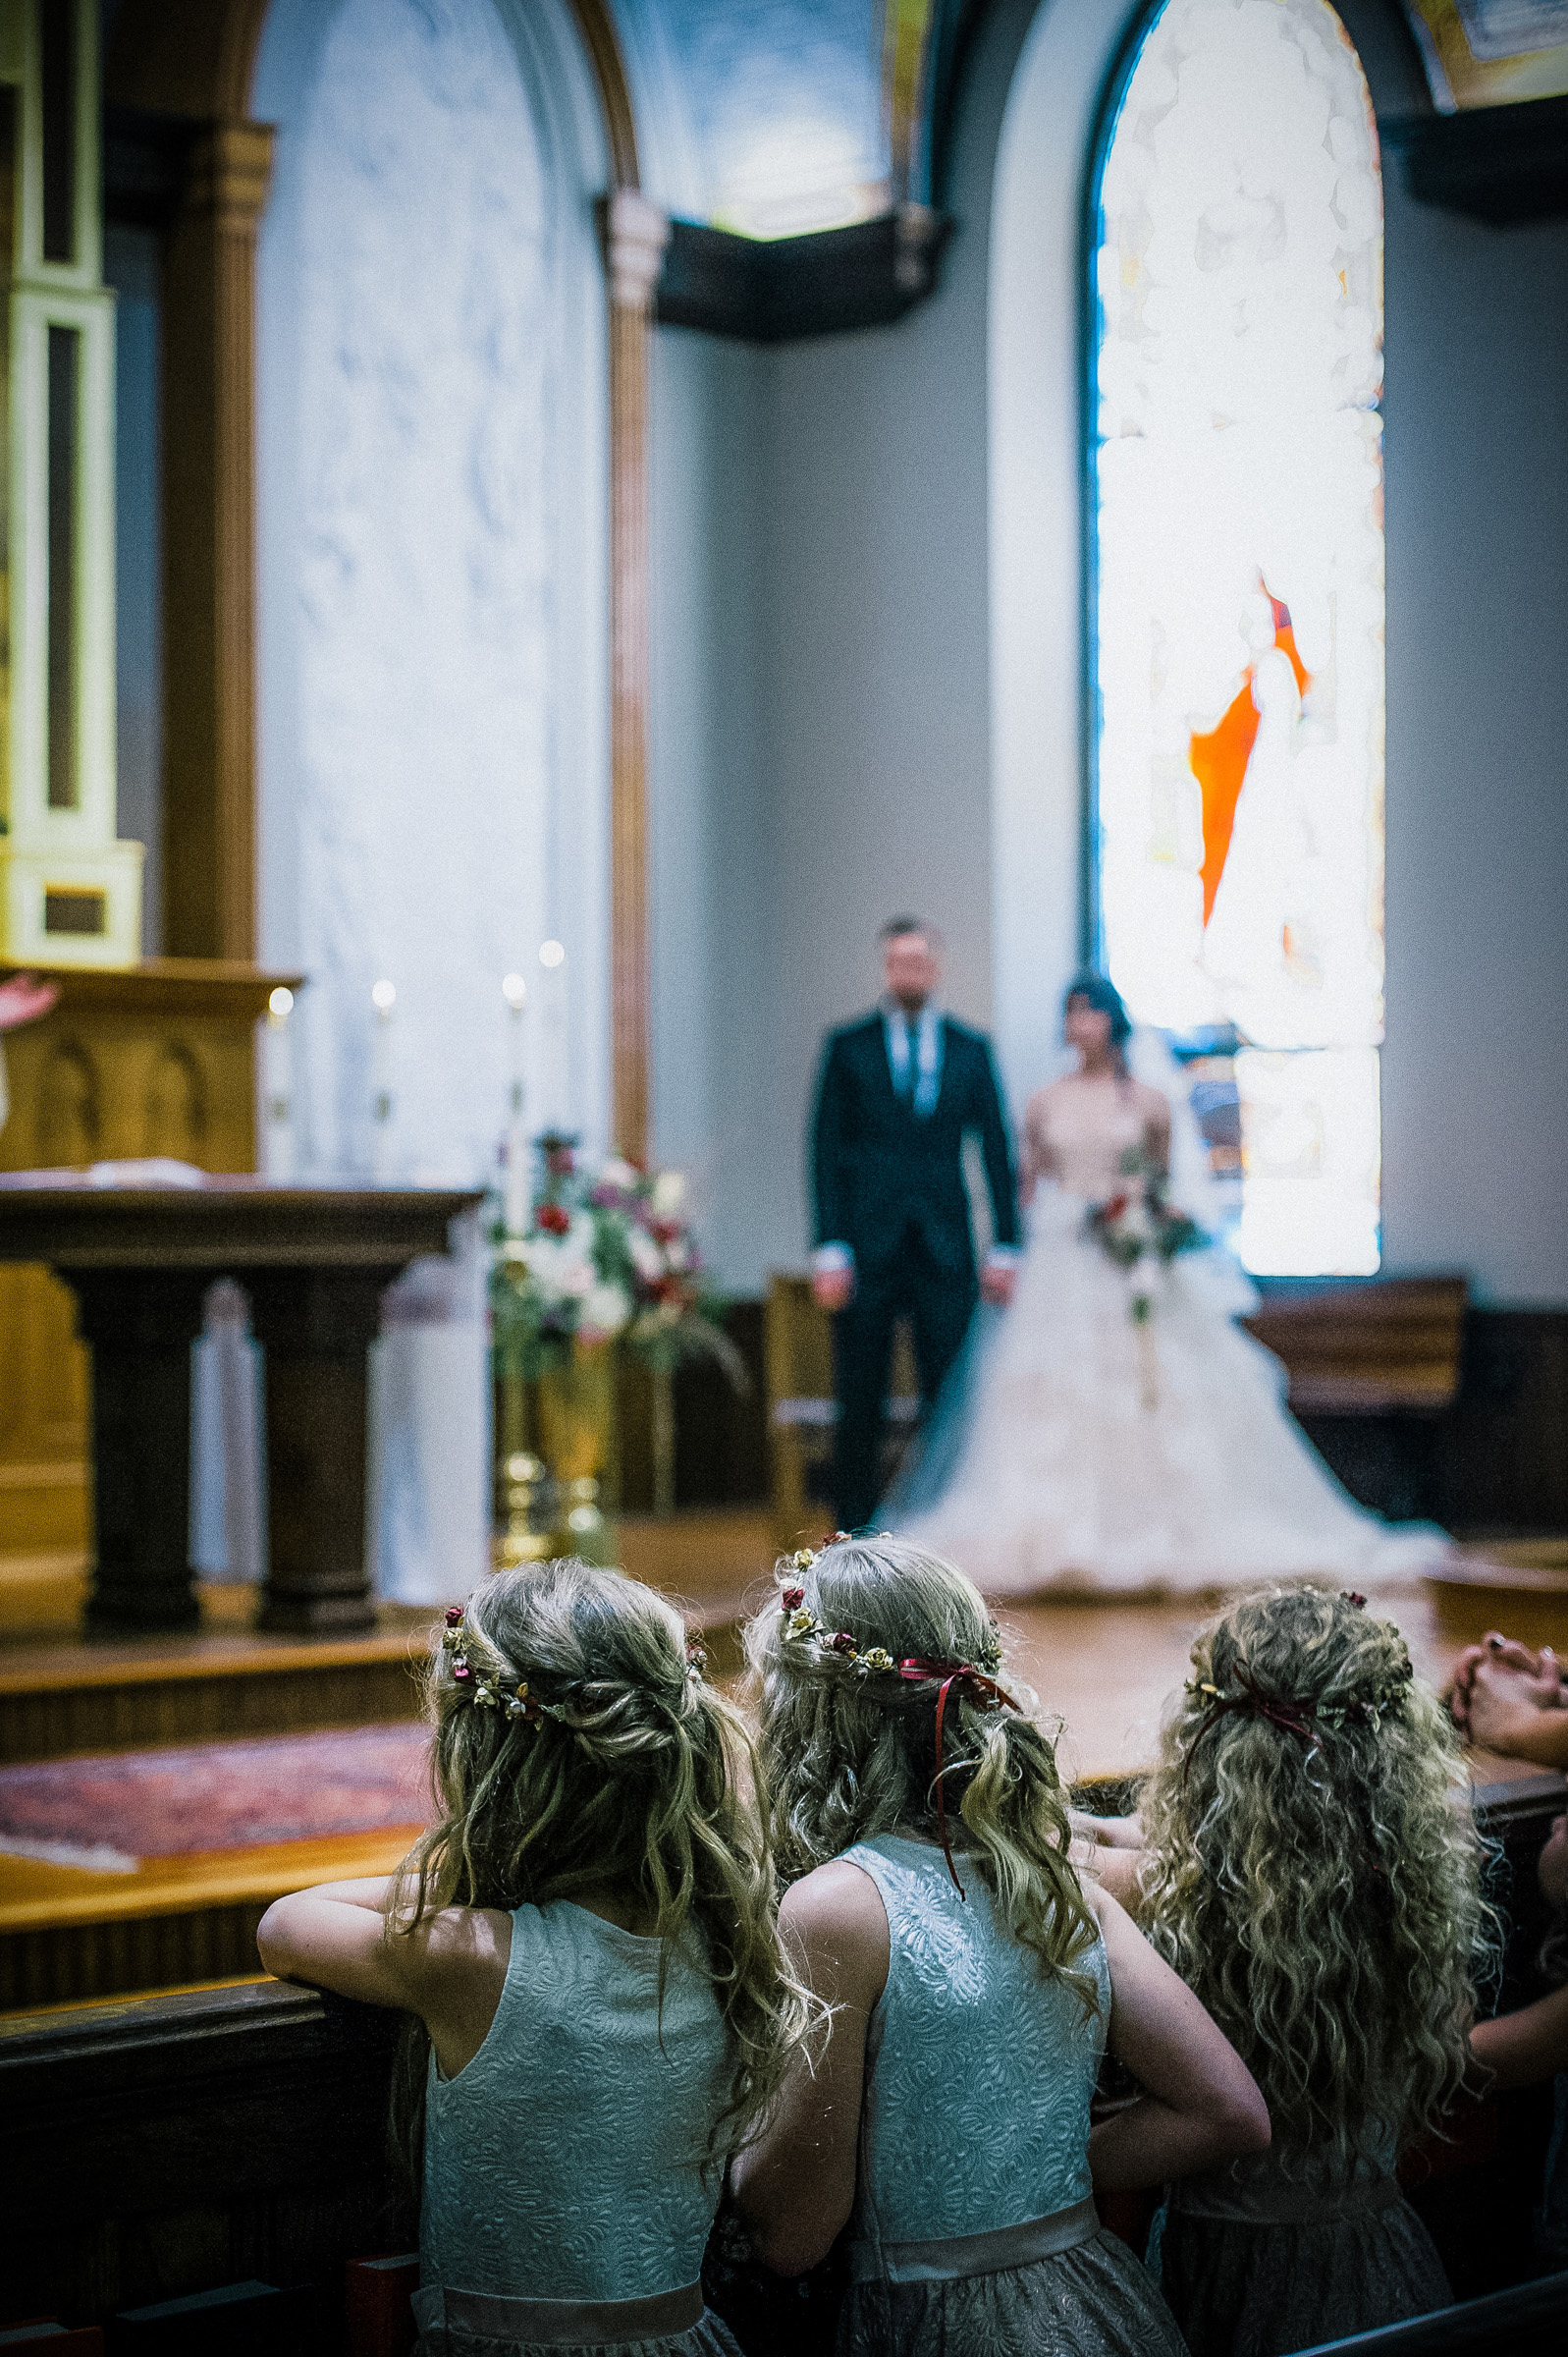 Flower girls watching wedding ceremony, by Richard Israel Photography